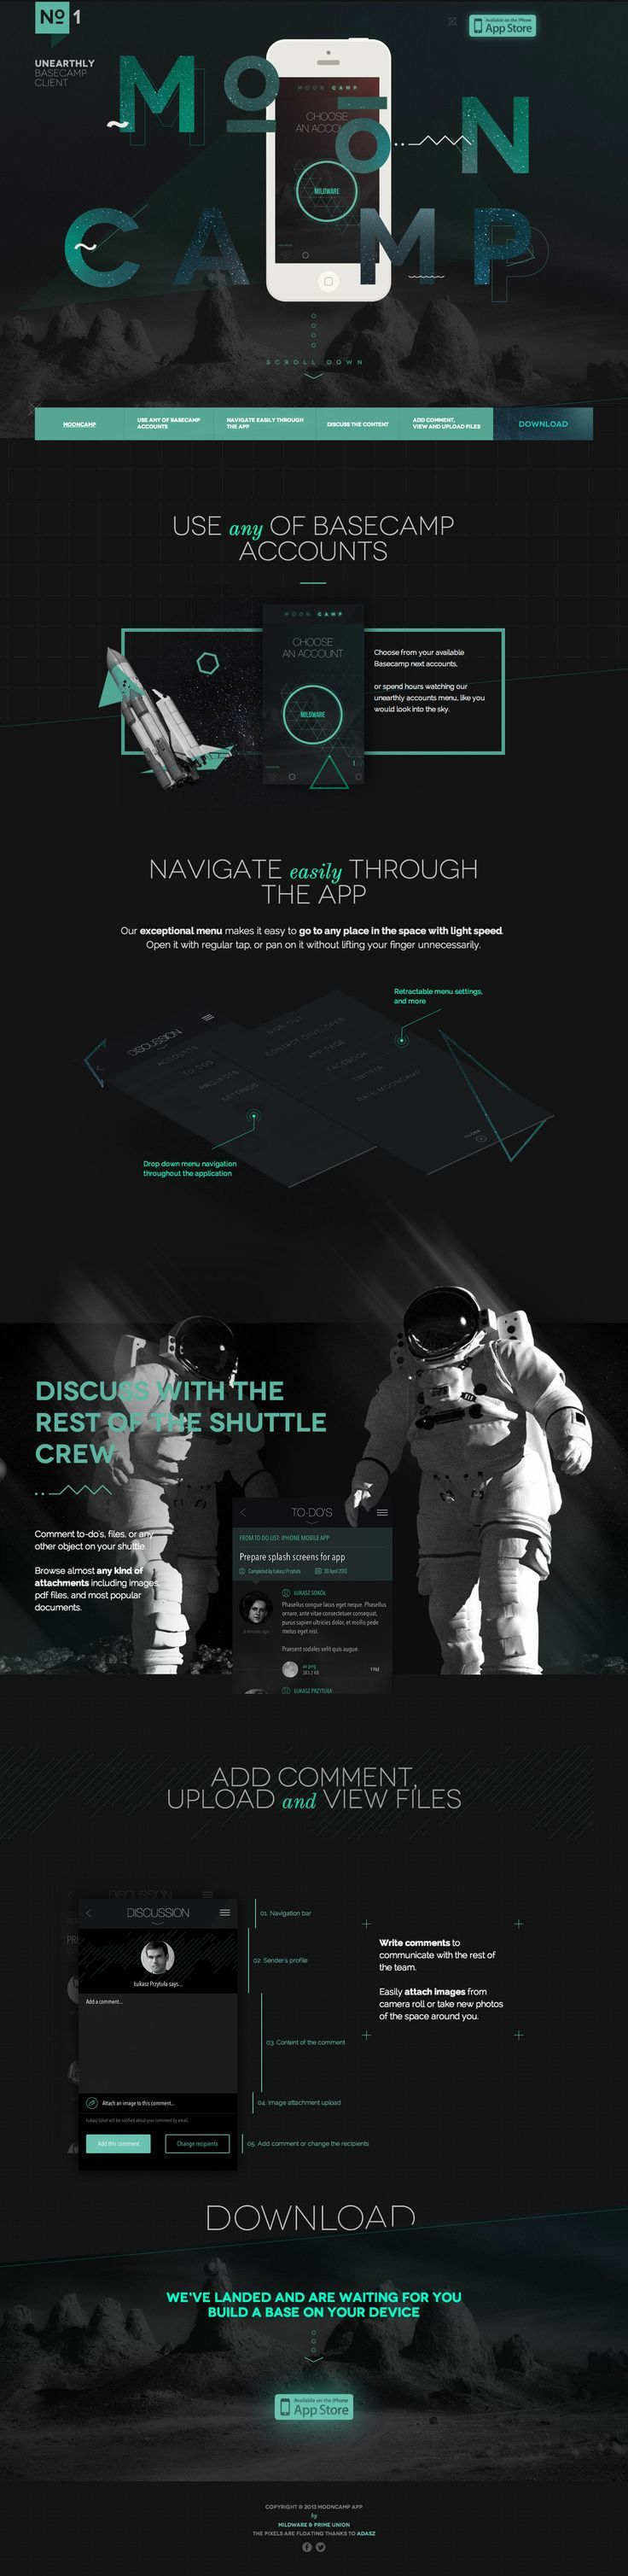 UI Designs for the Web | Abduzeedo Design Inspiration